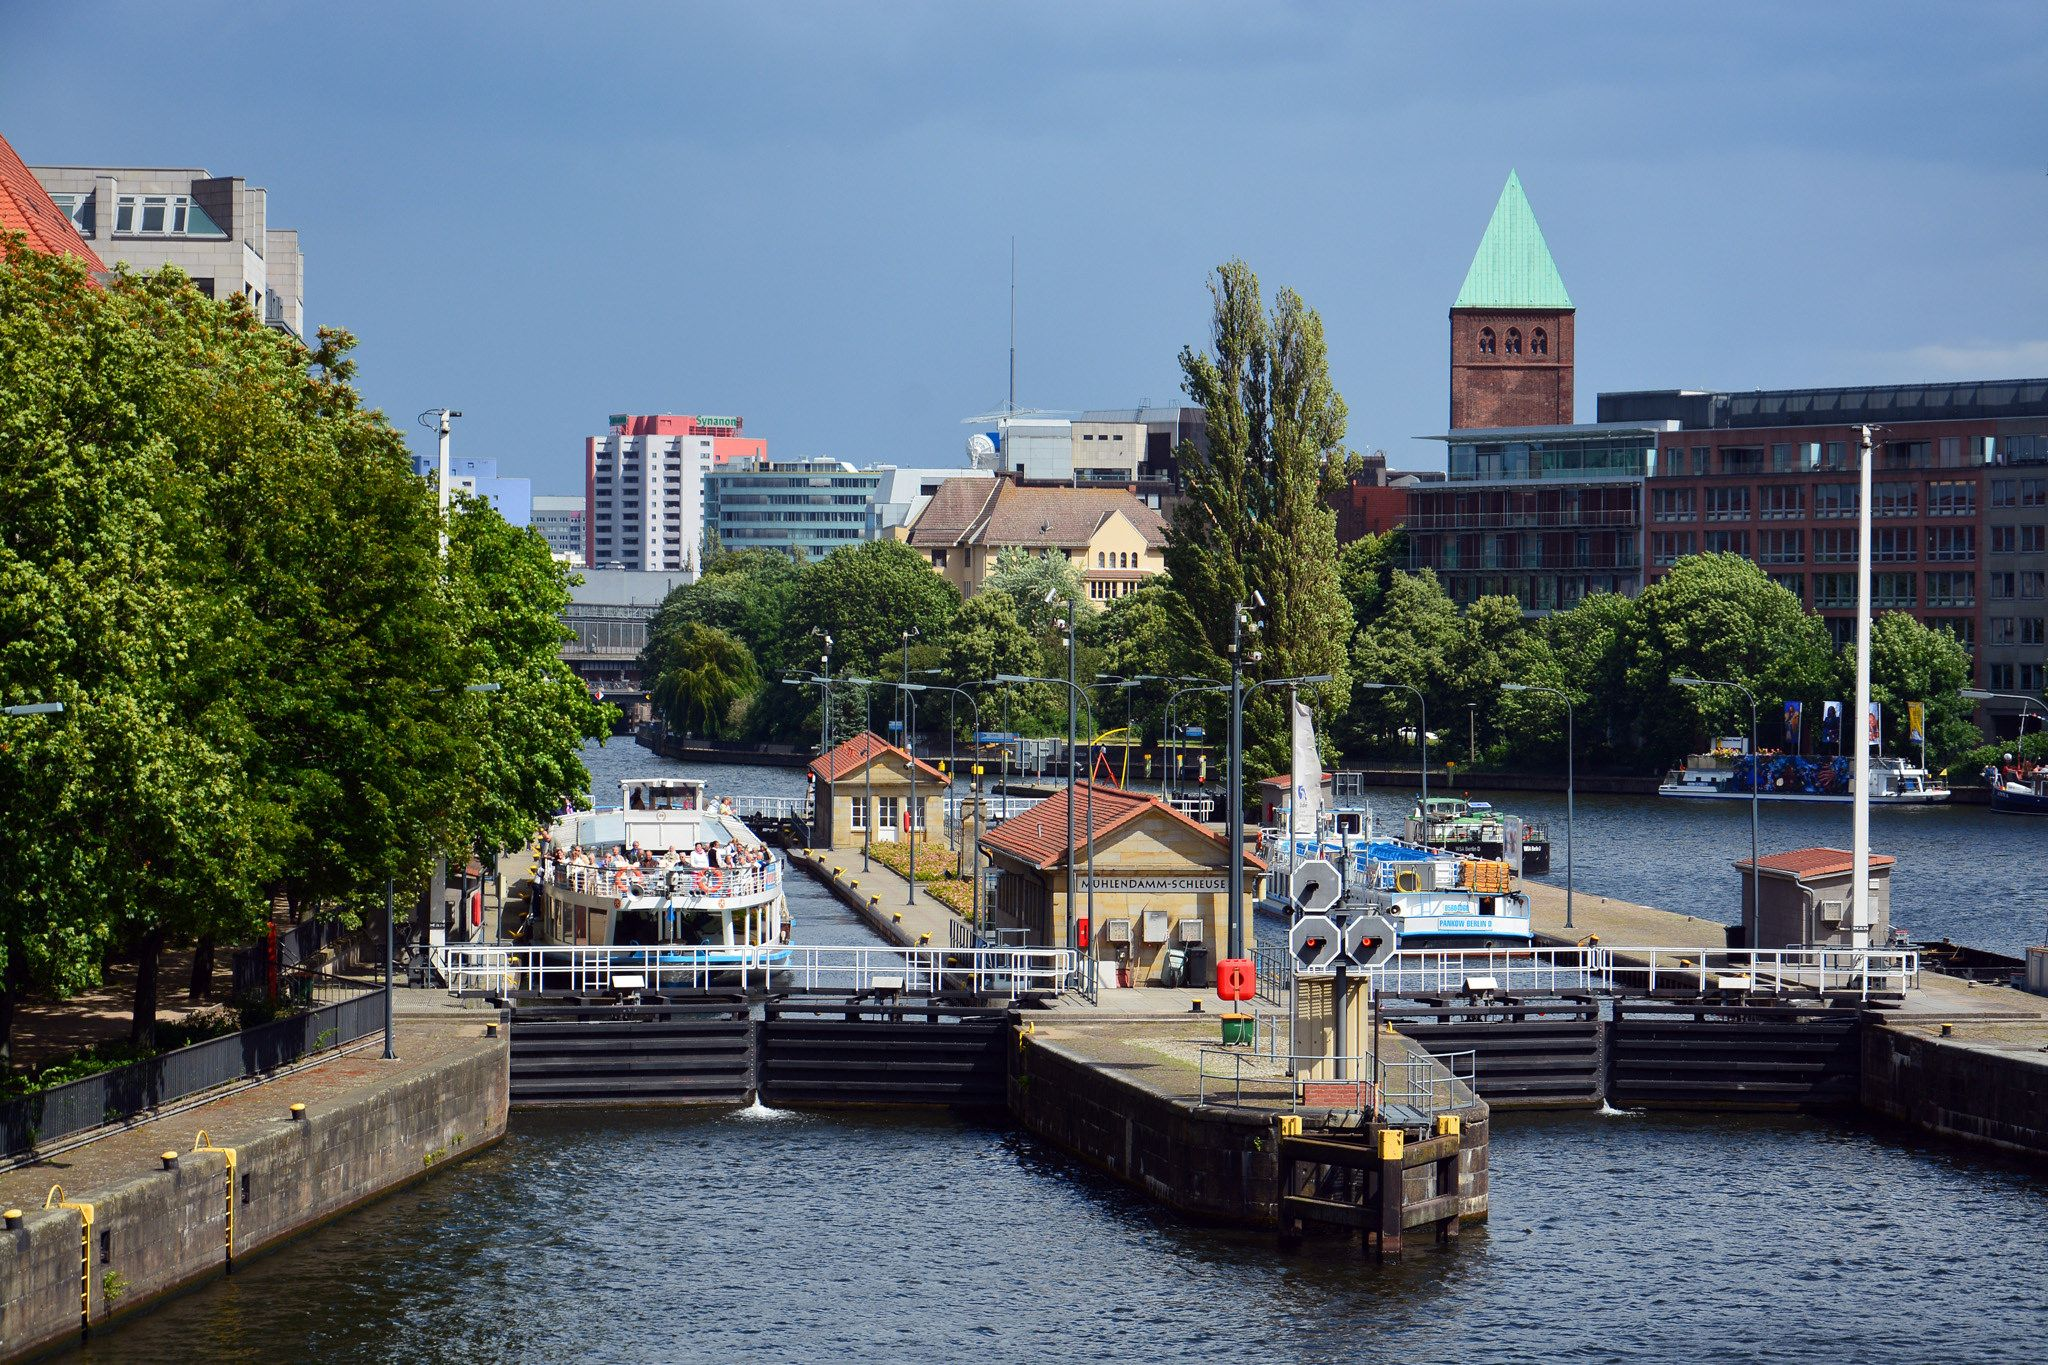 https://flic.kr/p/KaykRn | Mühlendammschleuse / Berlin | (Mills Dam lock) Twin locks on the river Spree completed 1942, said to be the busiest in Germany. Central Berlin, Germany.  (CC BY-SA - credit: Images George Rex.)